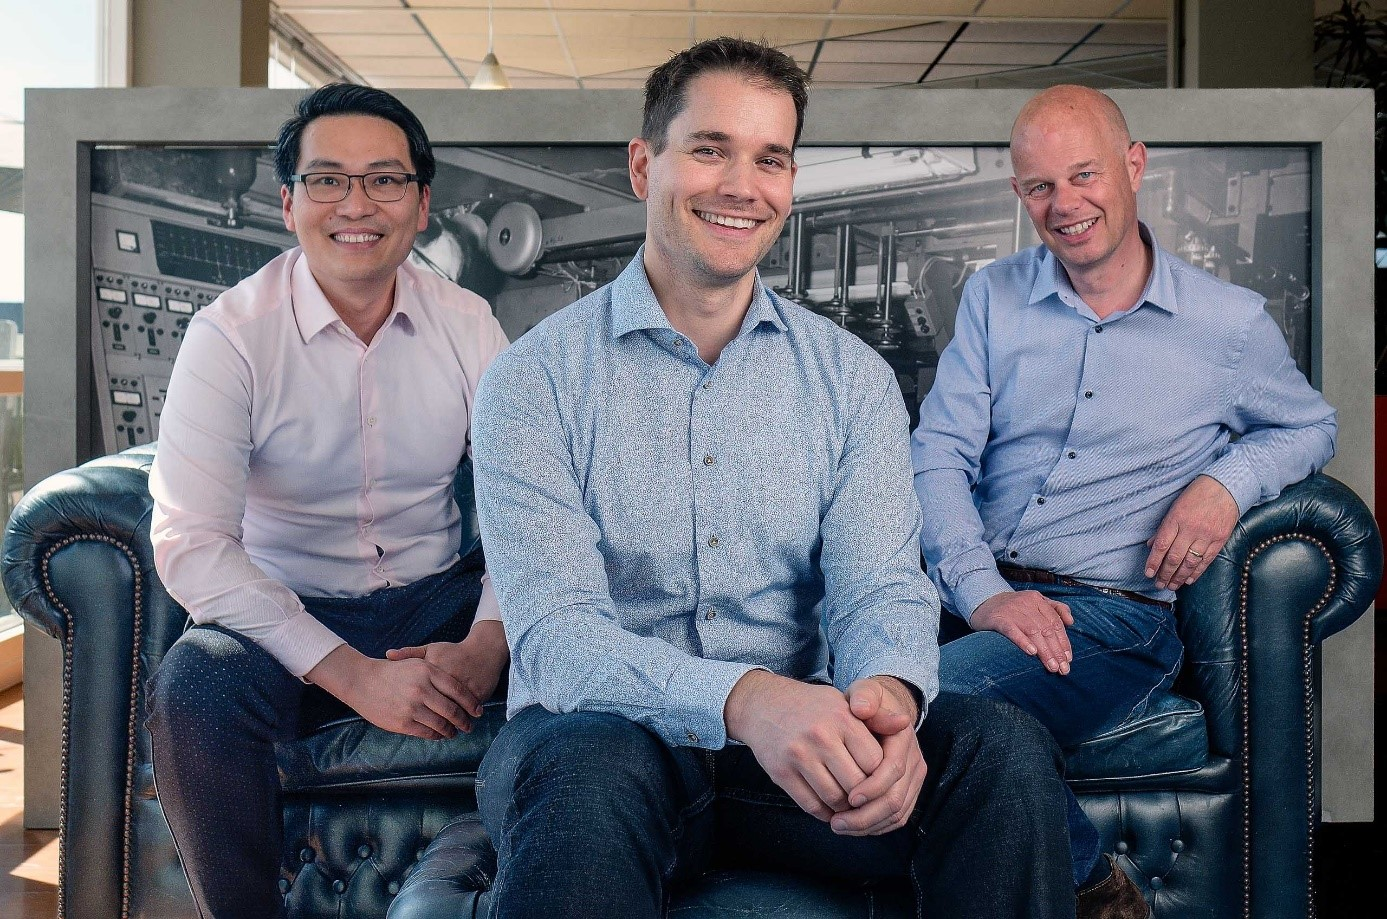 Our executive team (from left to right: Cheng Gong, Davey Daemen, Peter Steffers)